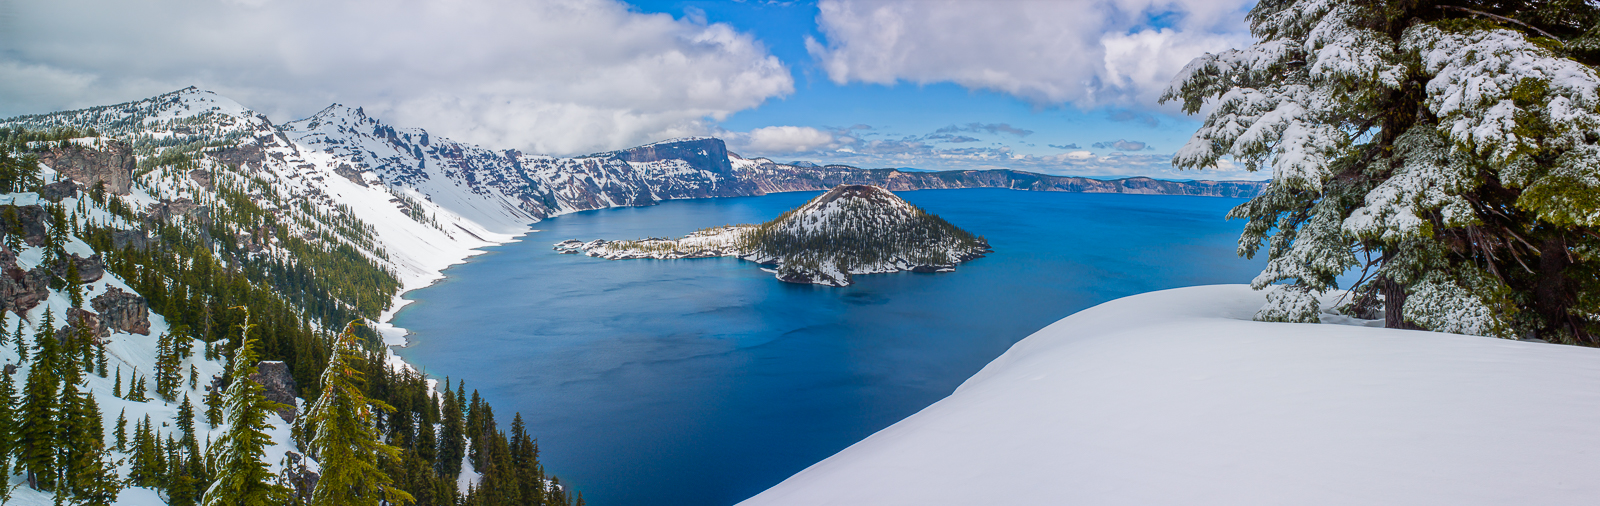 Crater Lake Winter Isle,panoramic,Crater Lake, Winter Isle,snow, photo